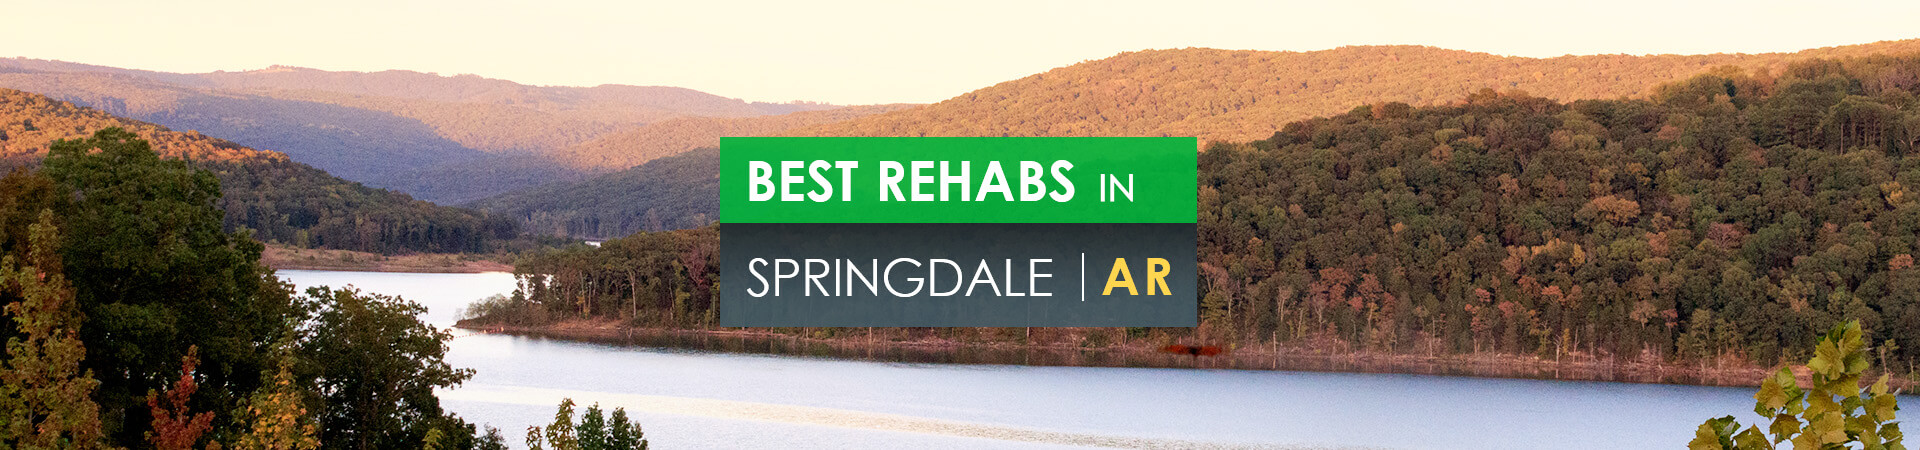 Best rehabs in Springdale, AR